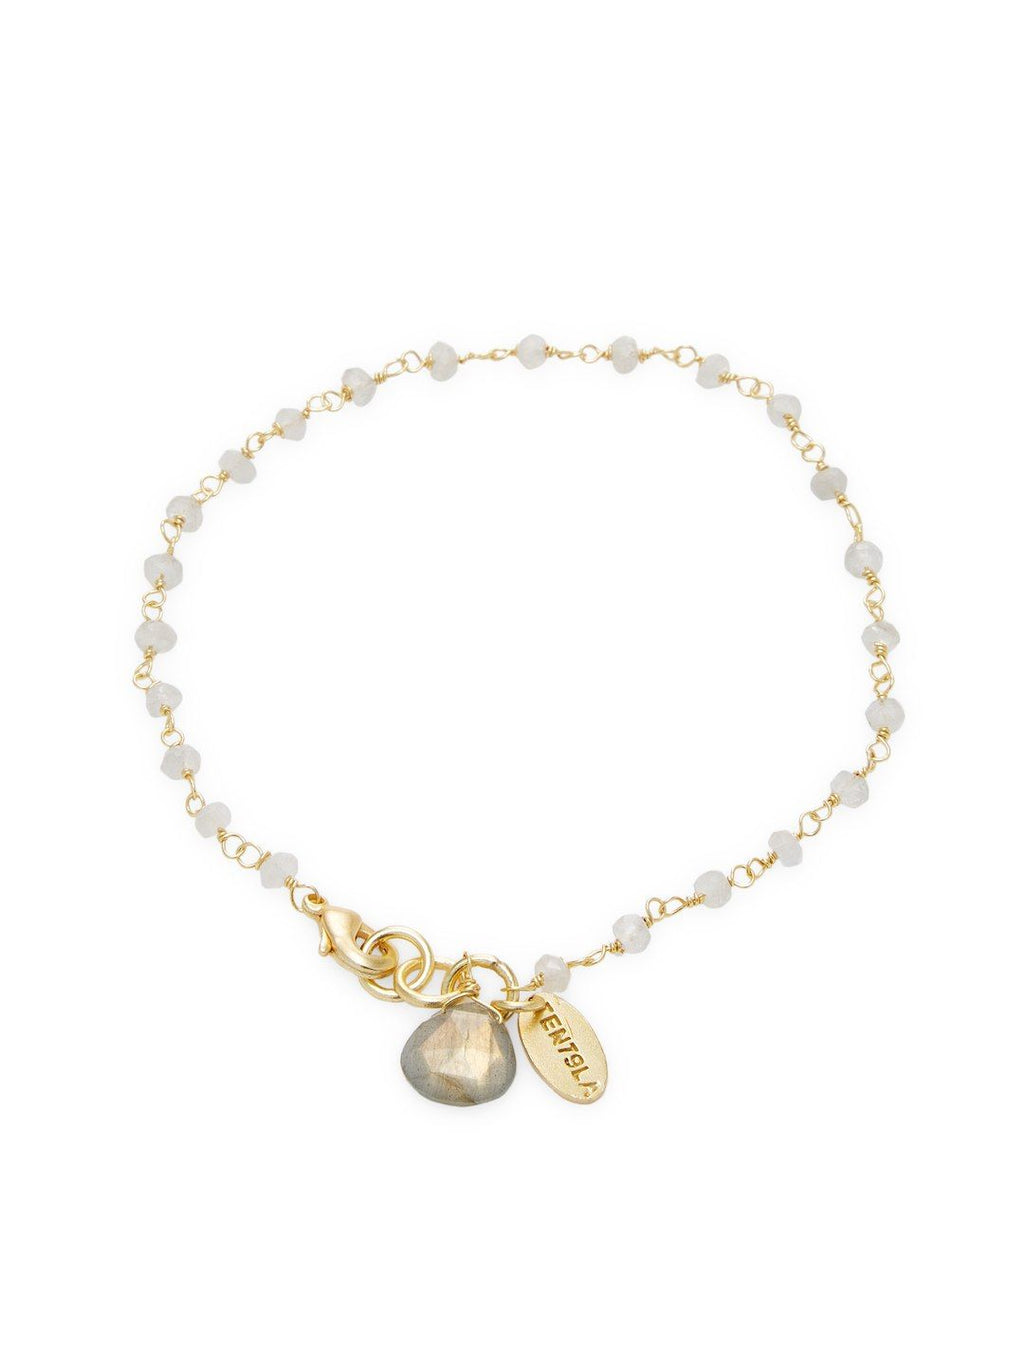 Chantilly Moonstone Single Bracelet with Moonstone Pendant